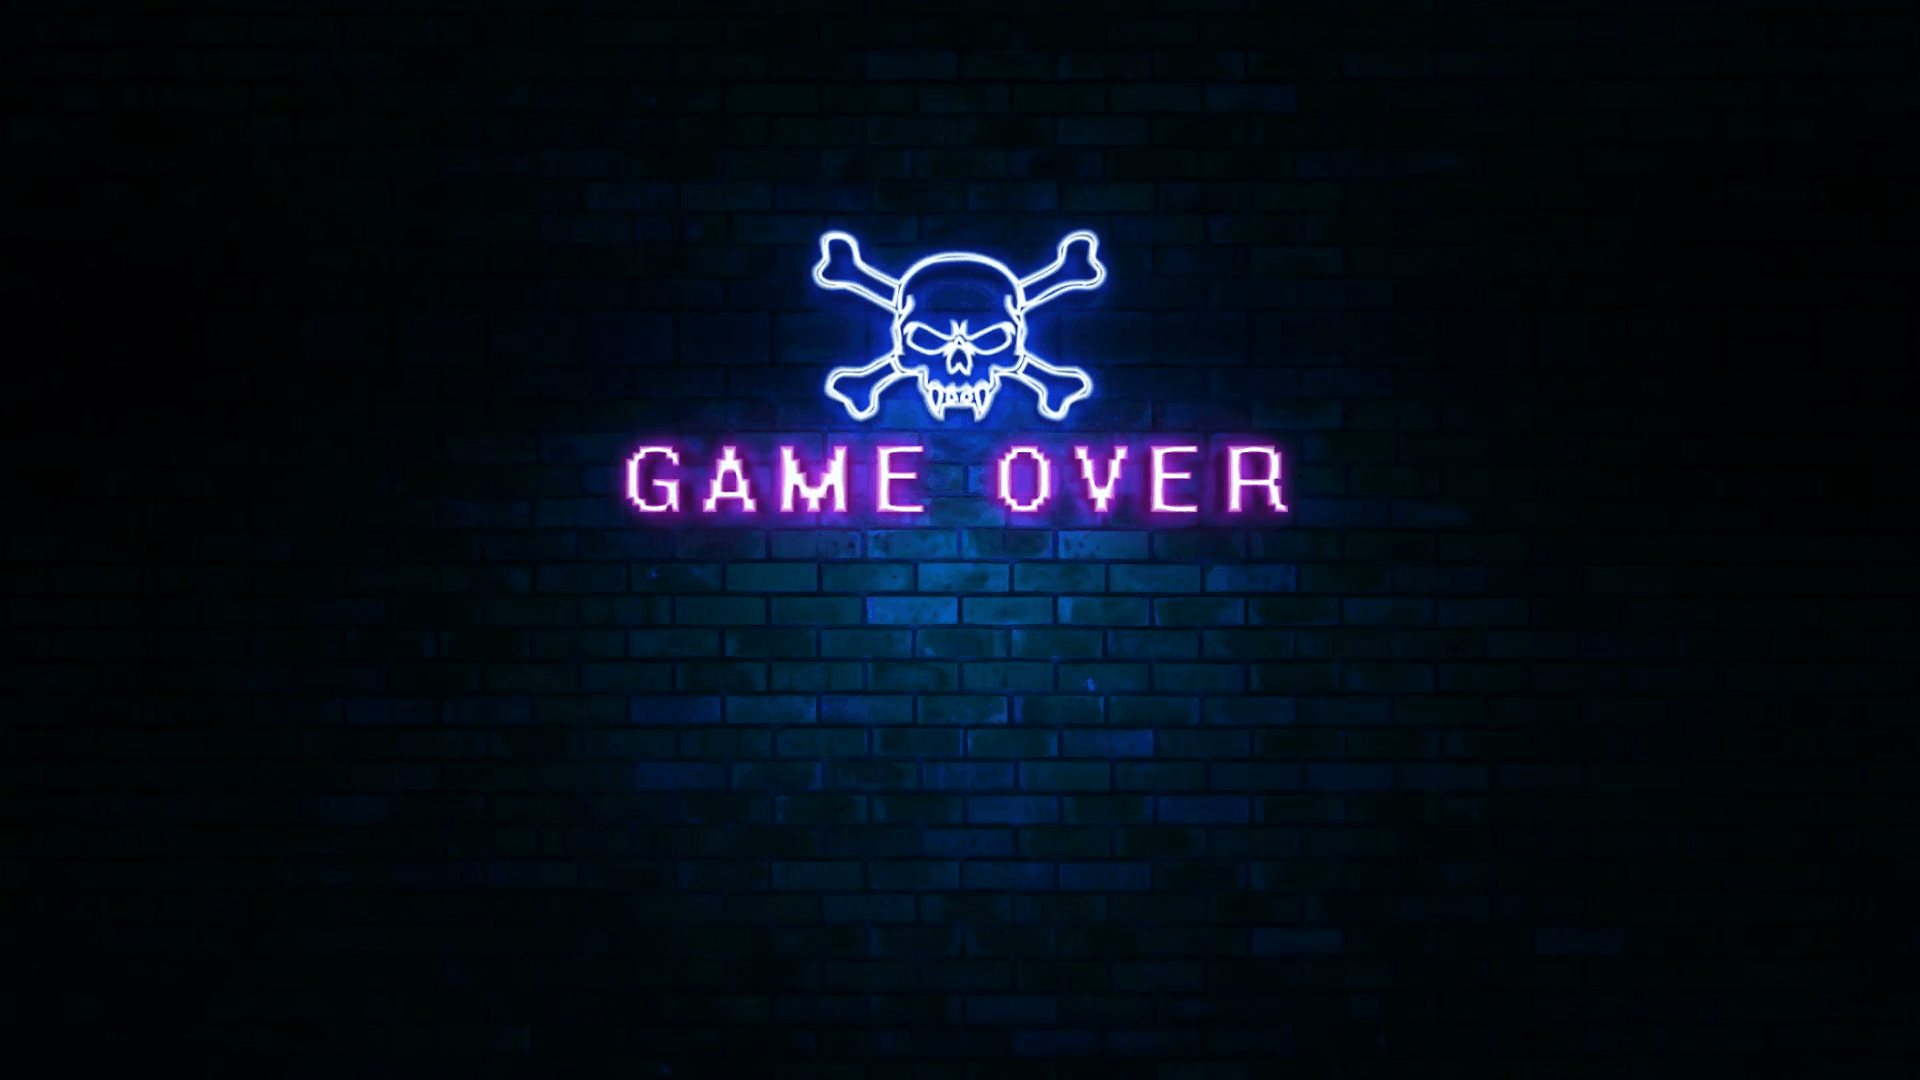 Neon Sign Wallpapers - Top Free Neon Sign Backgrounds